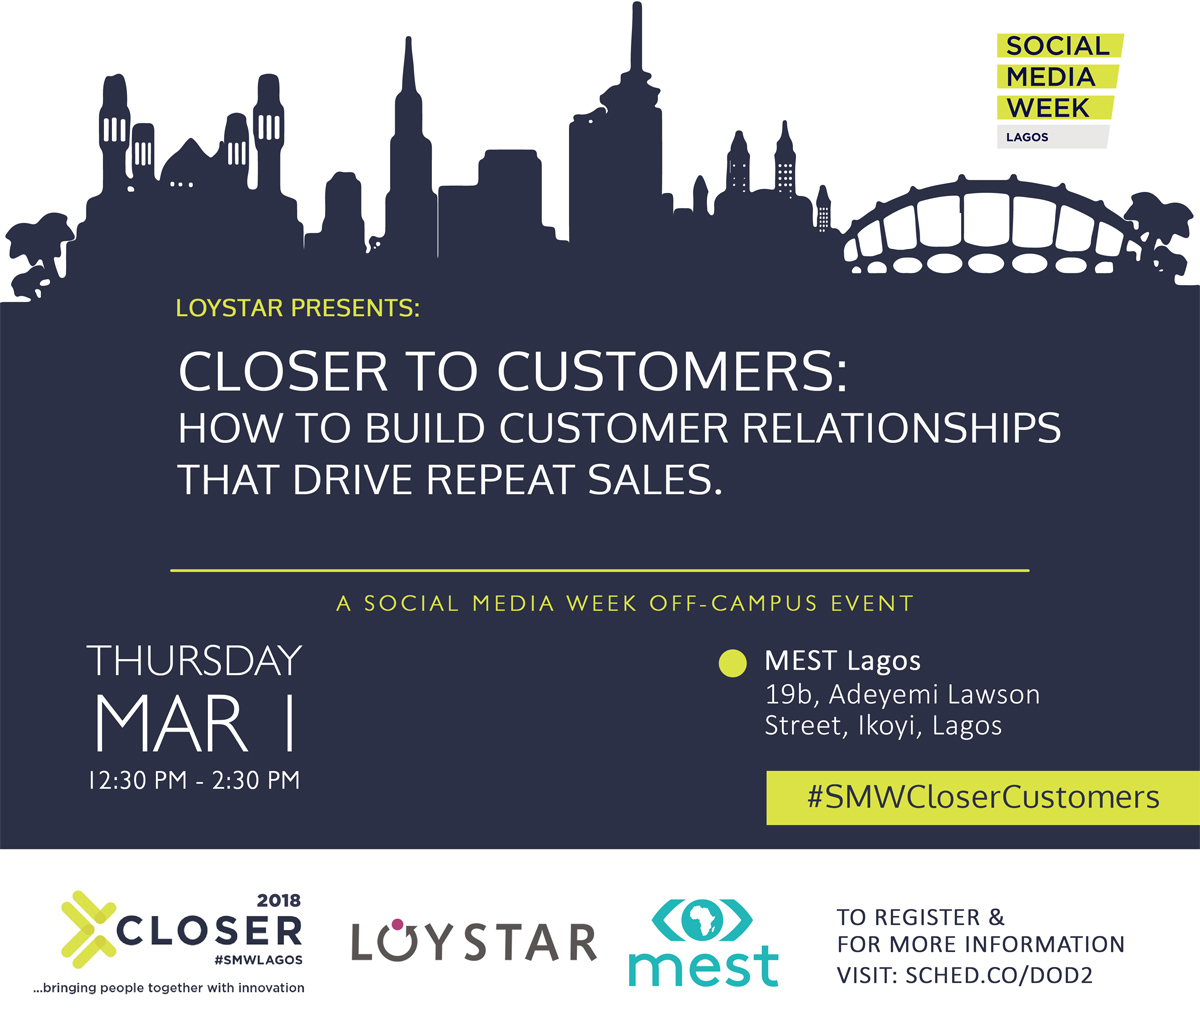 Loystar Event - Closer to CustomersL How to build customer relationships that drive repeat sales.